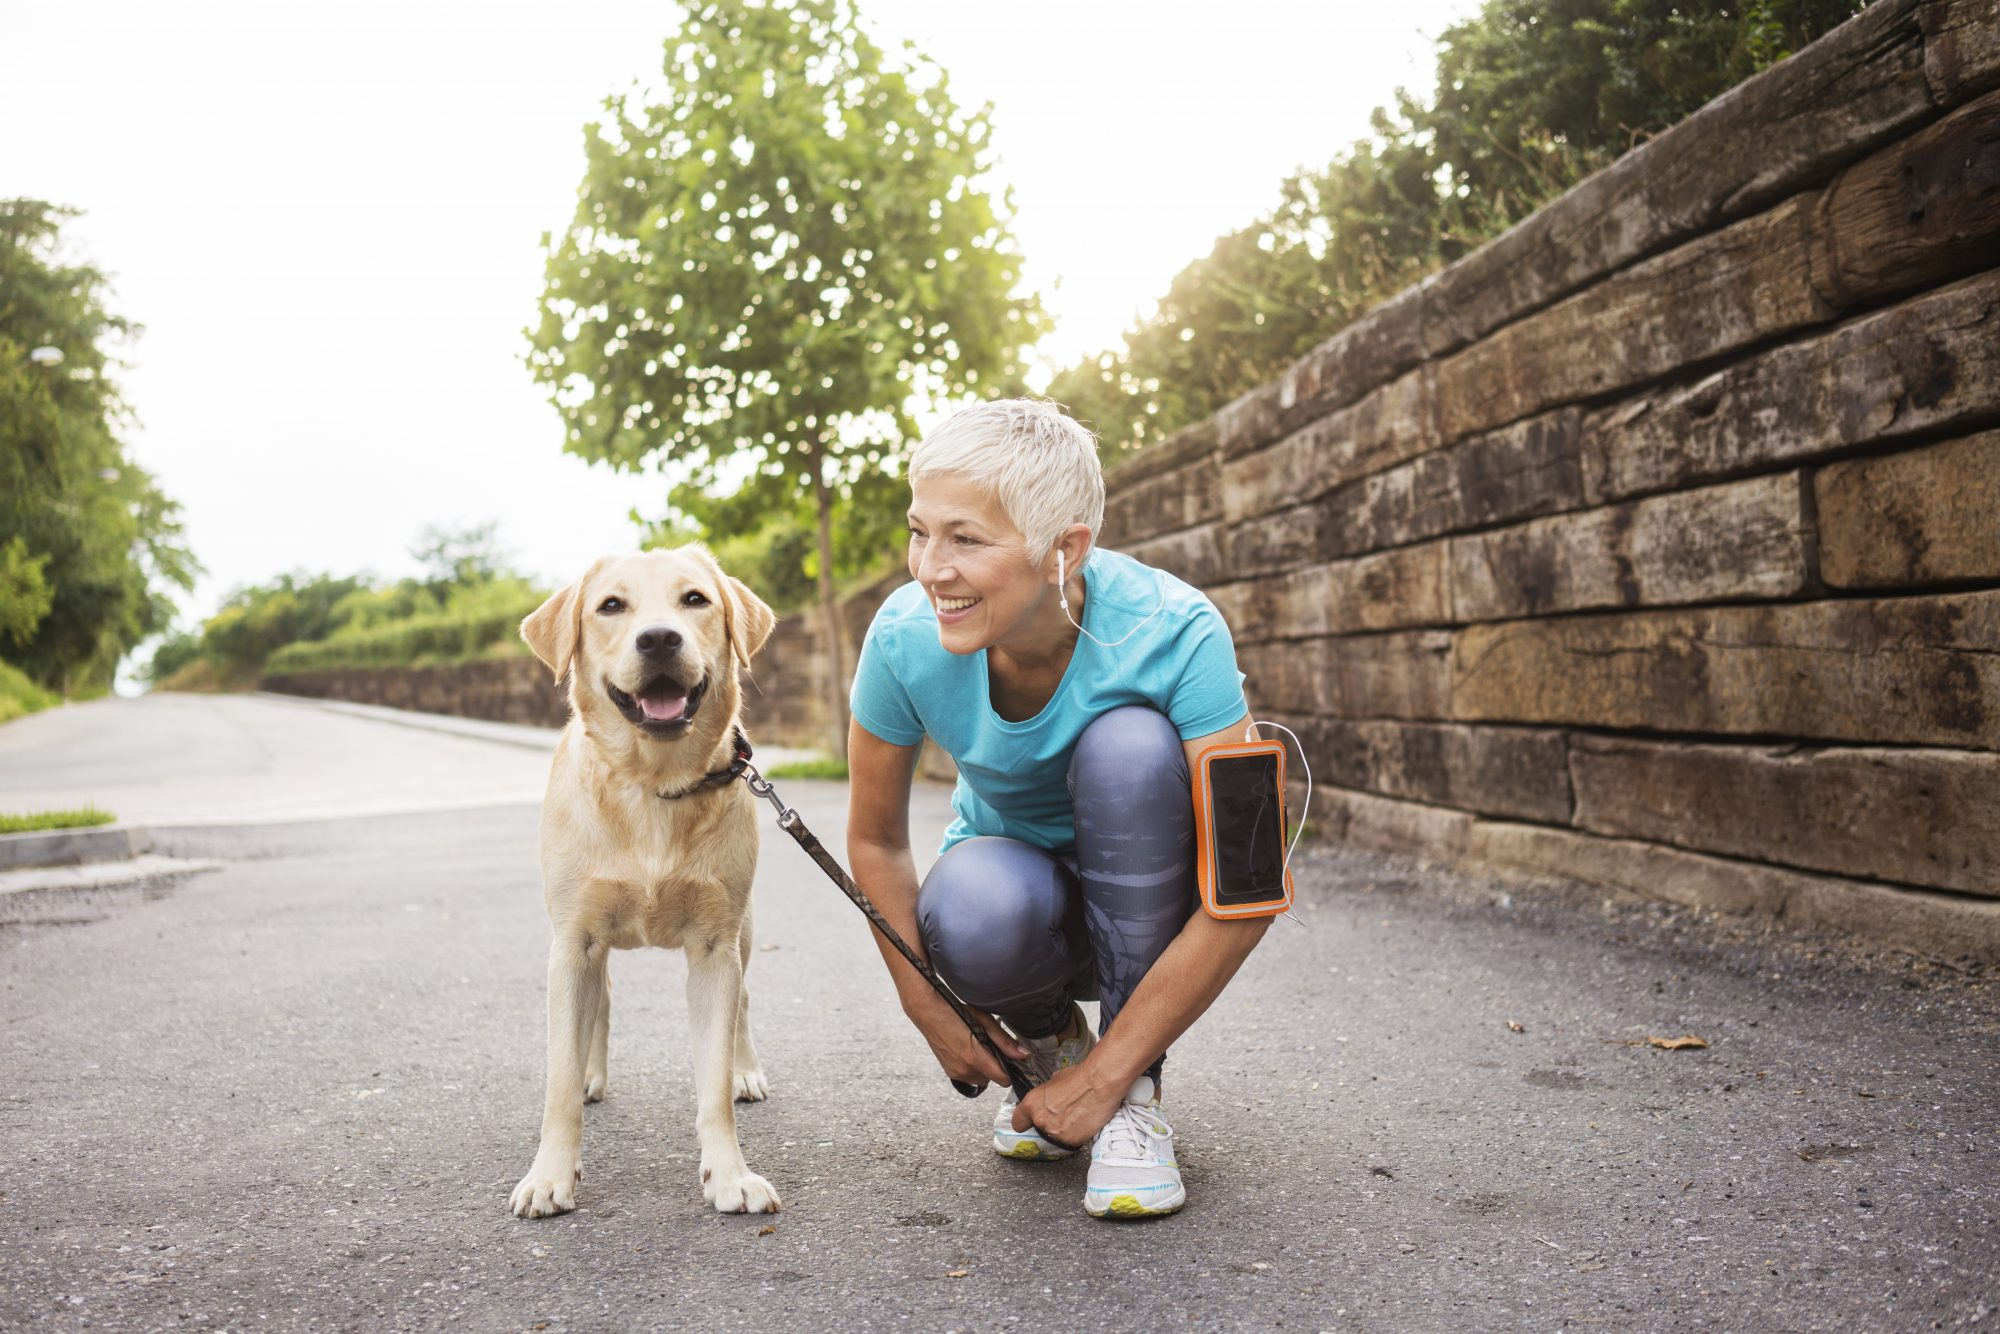 woman outside exercising with dog